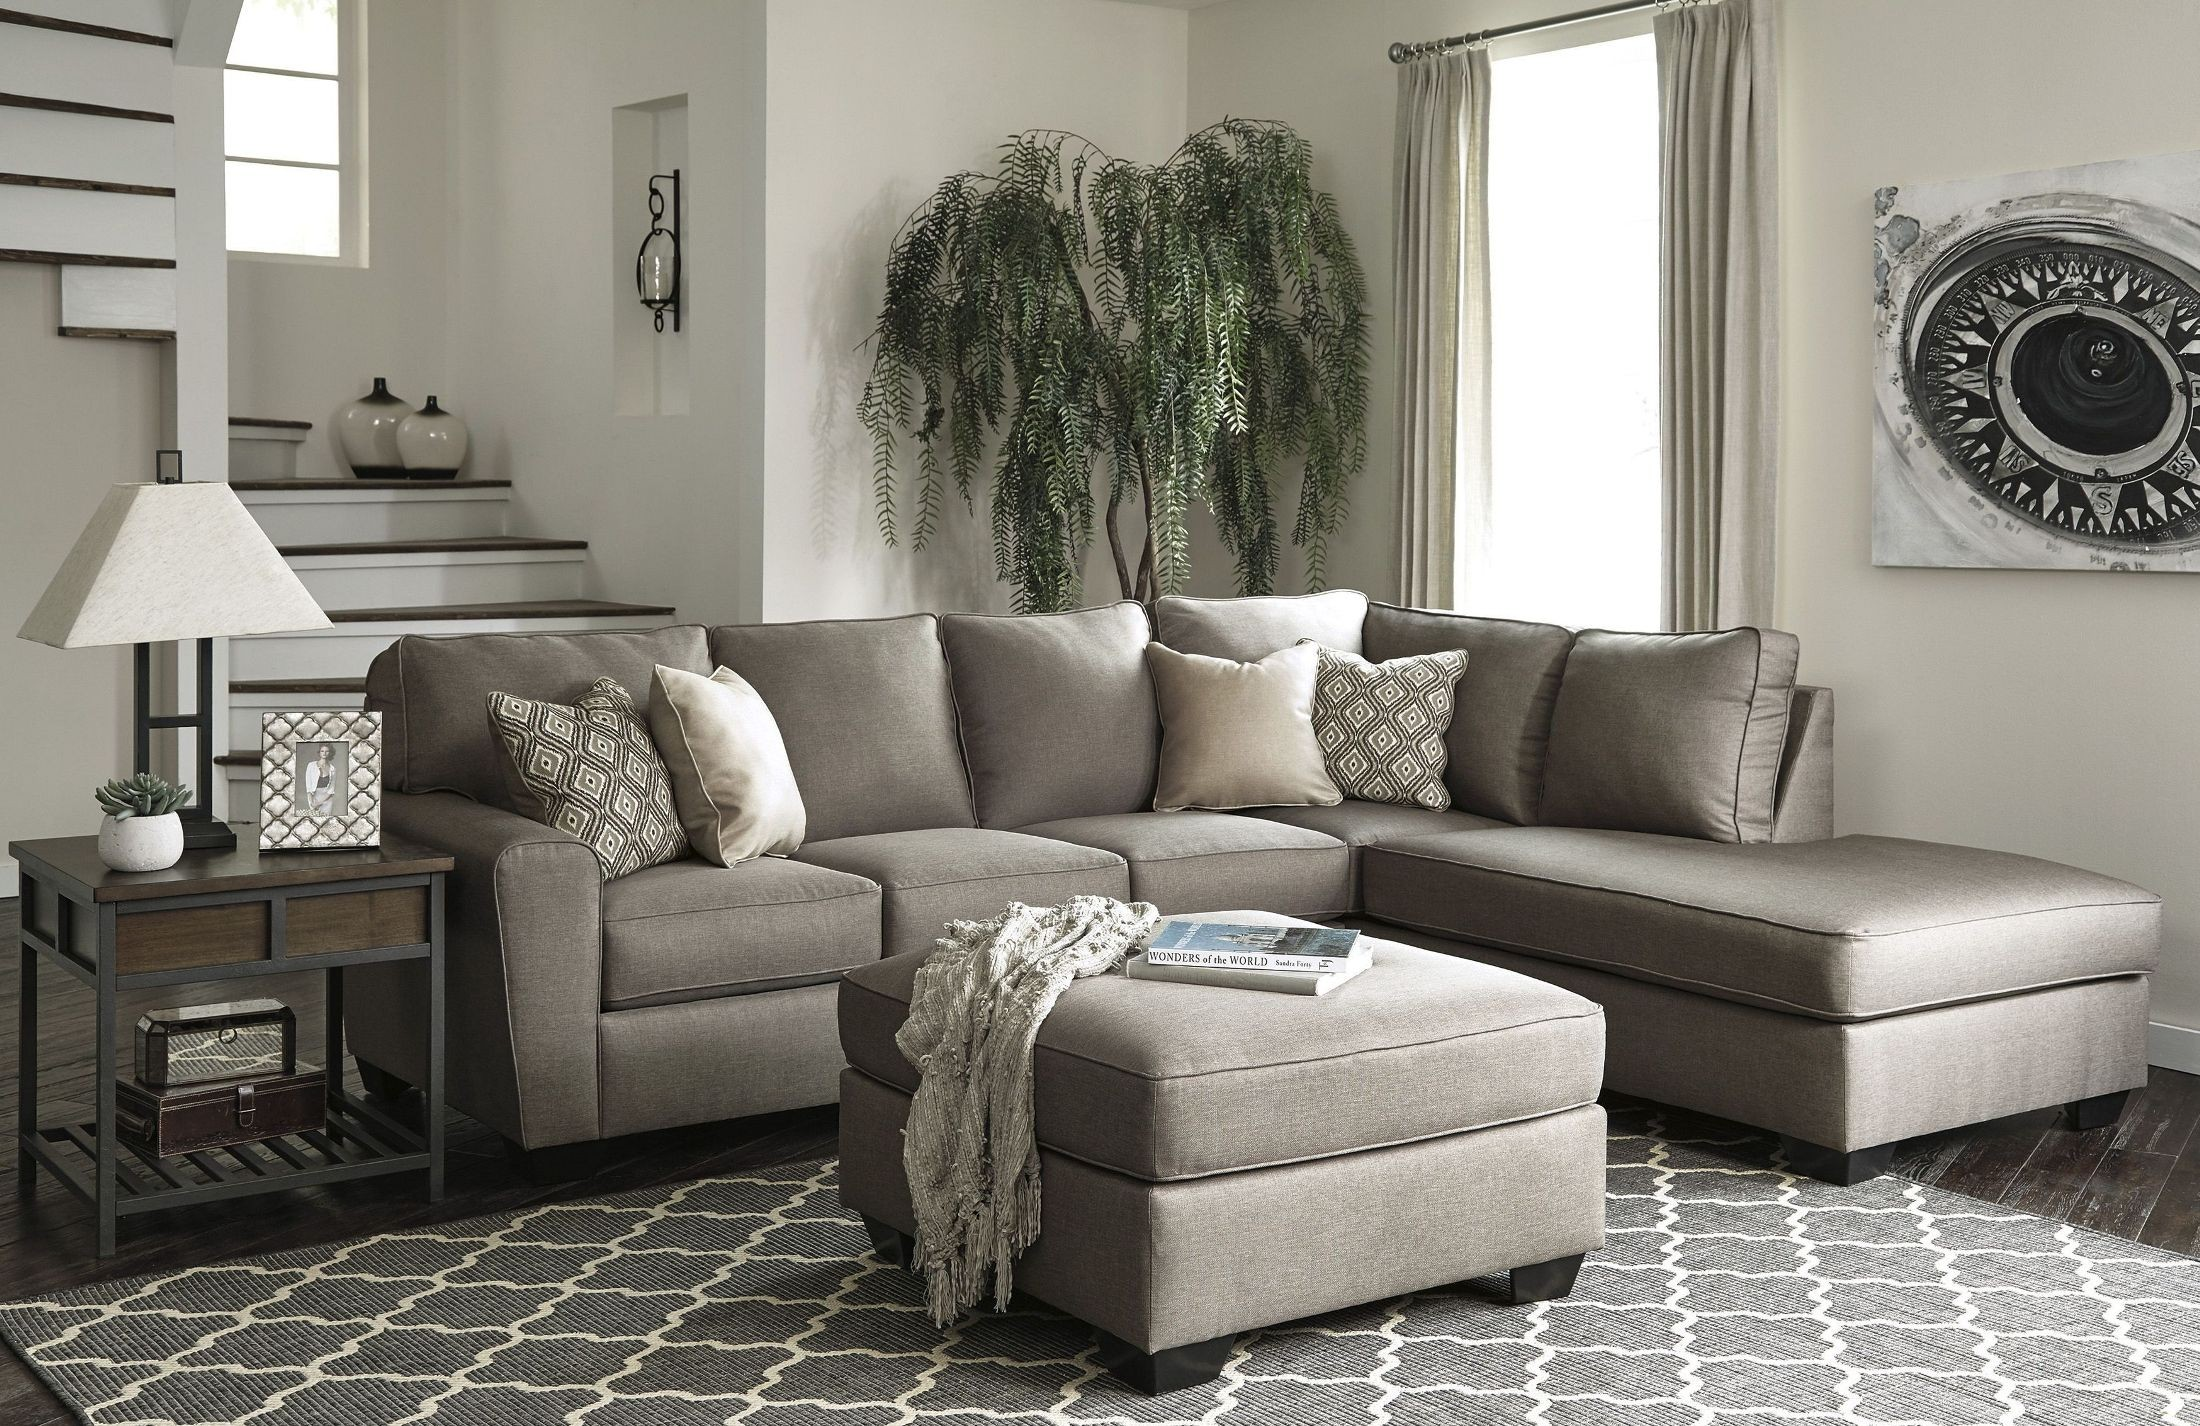 cloud 2 sectional sofa julia cupholder convertible futon bed white calicho cashmere raf from ashley | coleman furniture